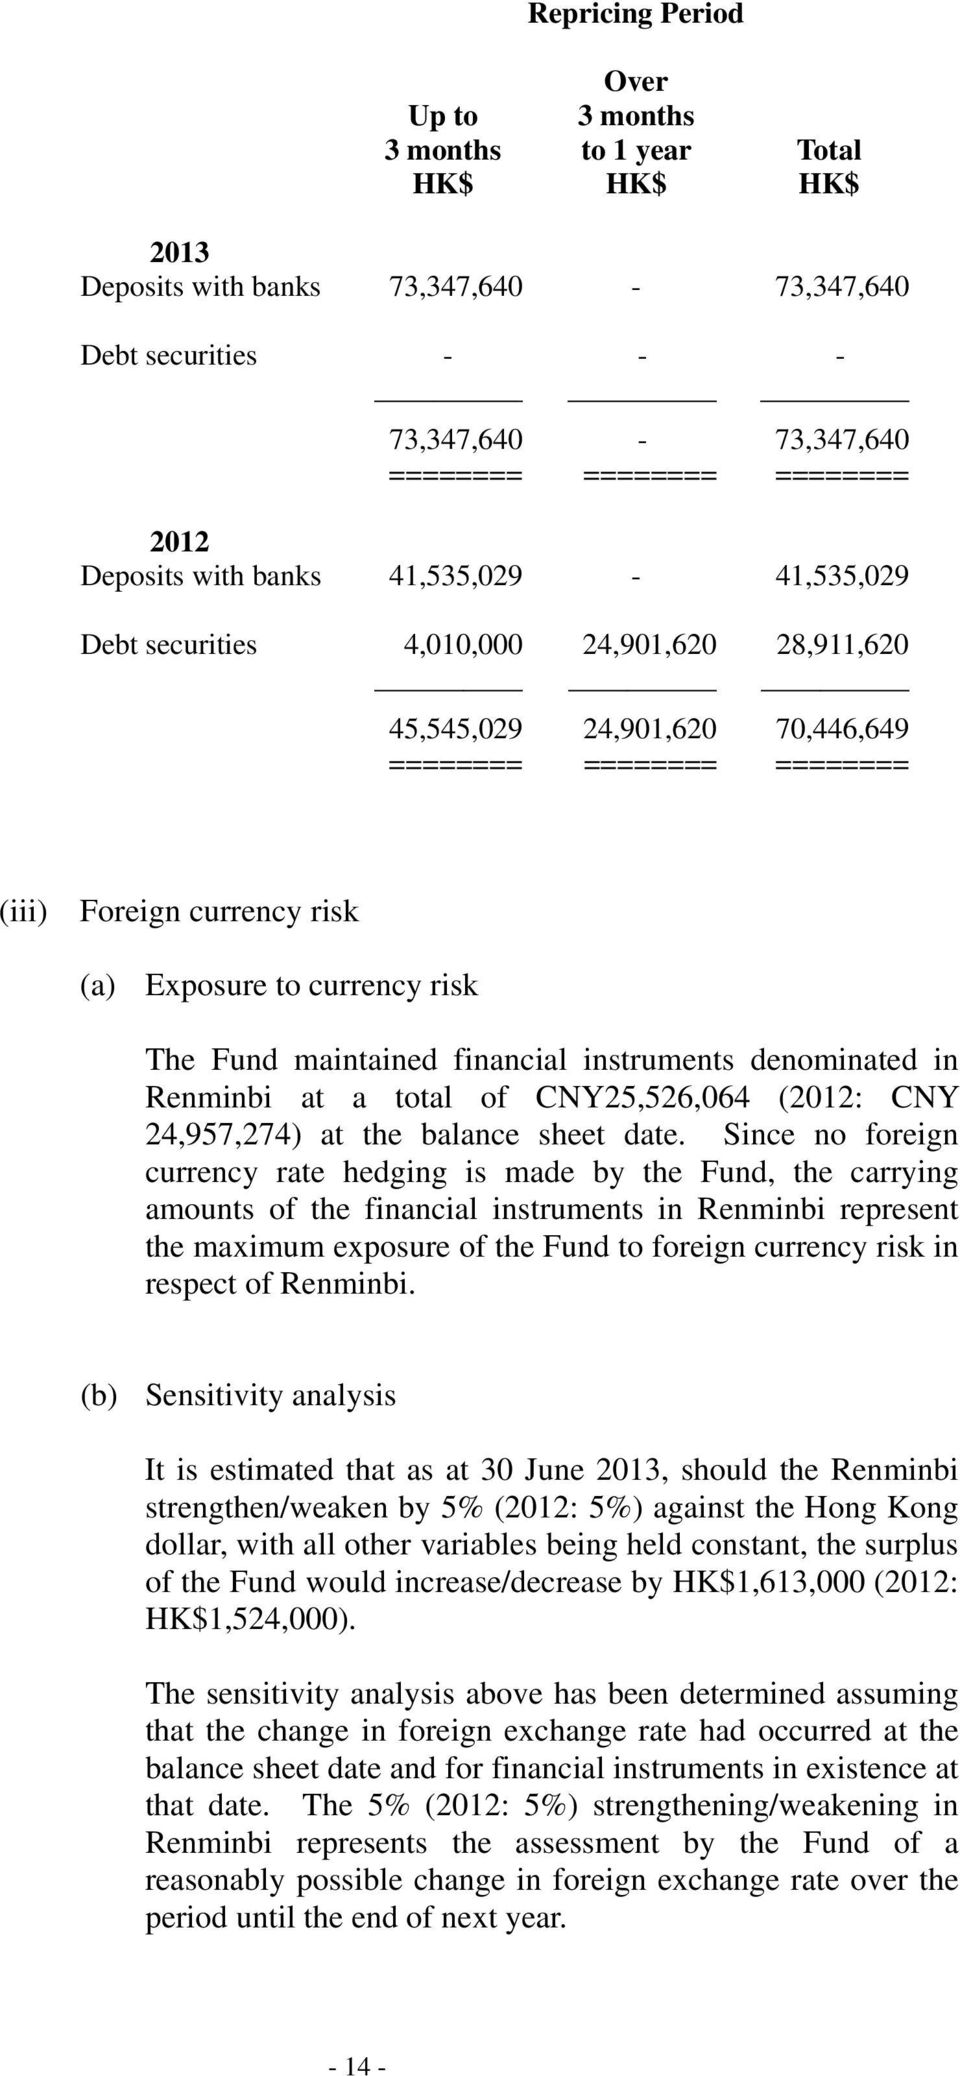 Fund maintained financial instruments denominated in Renminbi at a total of CNY25,526,064 (2012: CNY 24,957,274) at the balance sheet date.